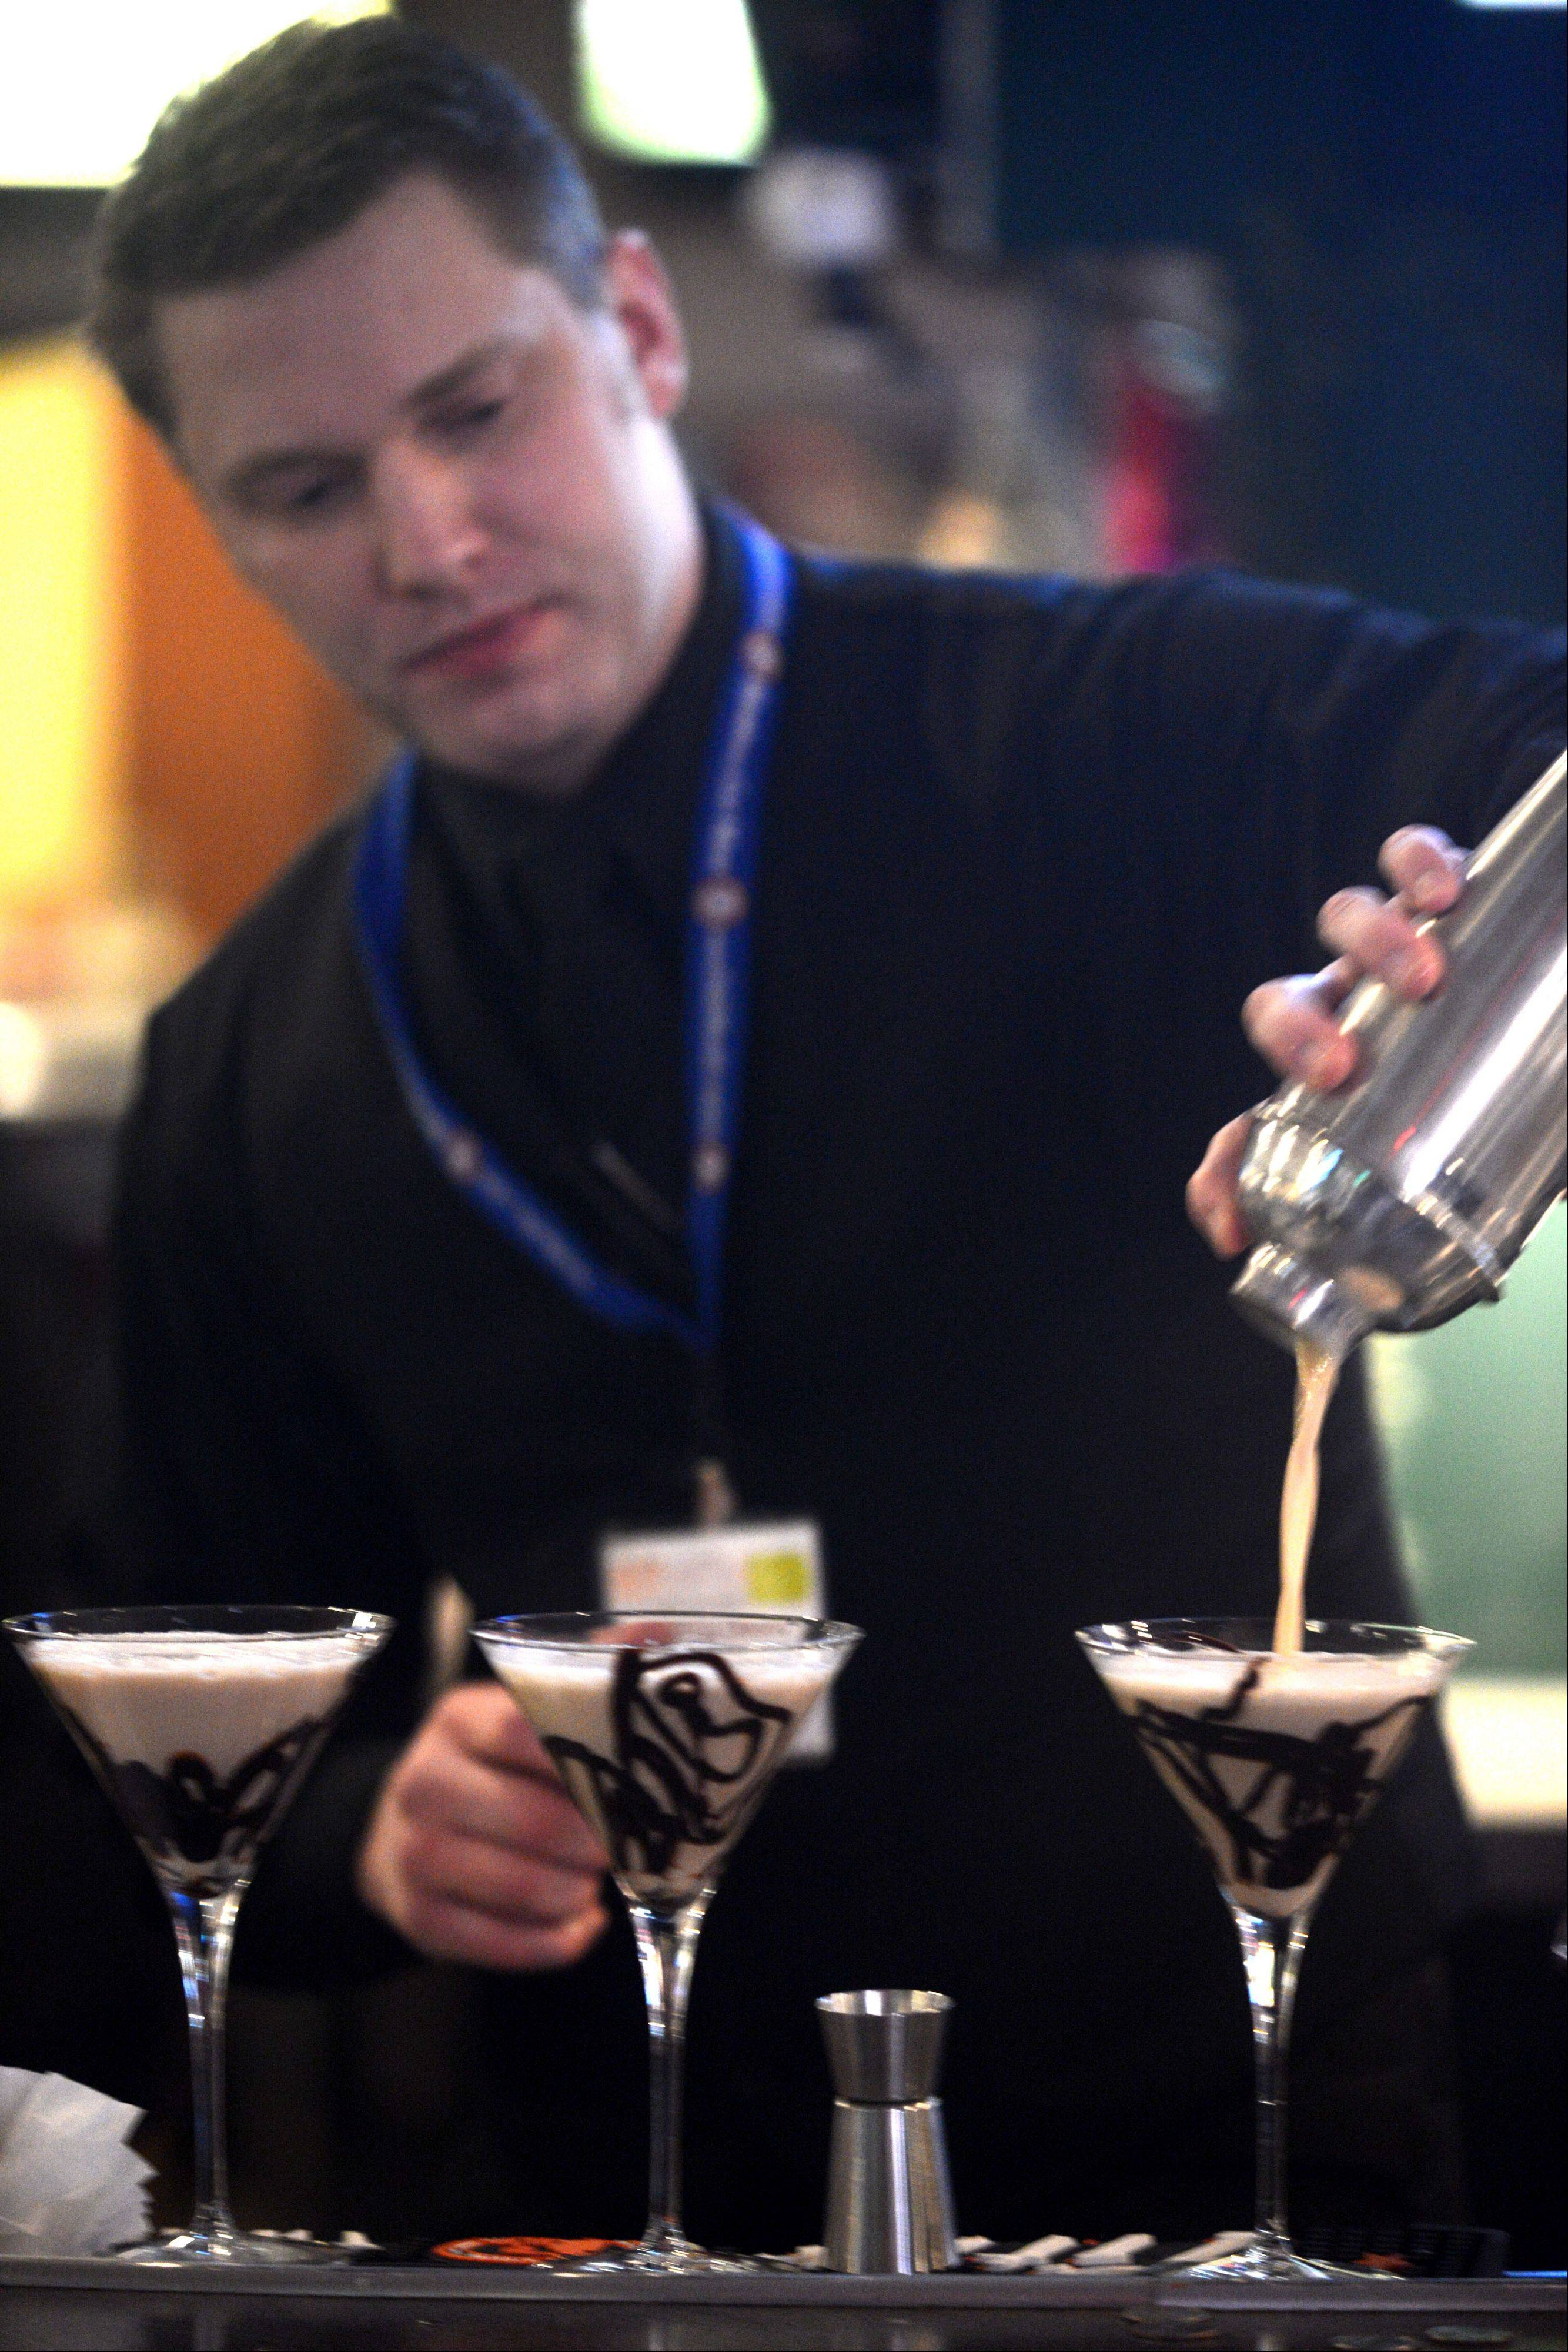 Joshua Olson of Chicago Prime Steakhouse prepares the Chocolate Love Martini during the Daily Herald's Best Martini in the 'Burbs Challenge at the At The Post Sports Bar & OTB in Elk Grove Village on Monday night.